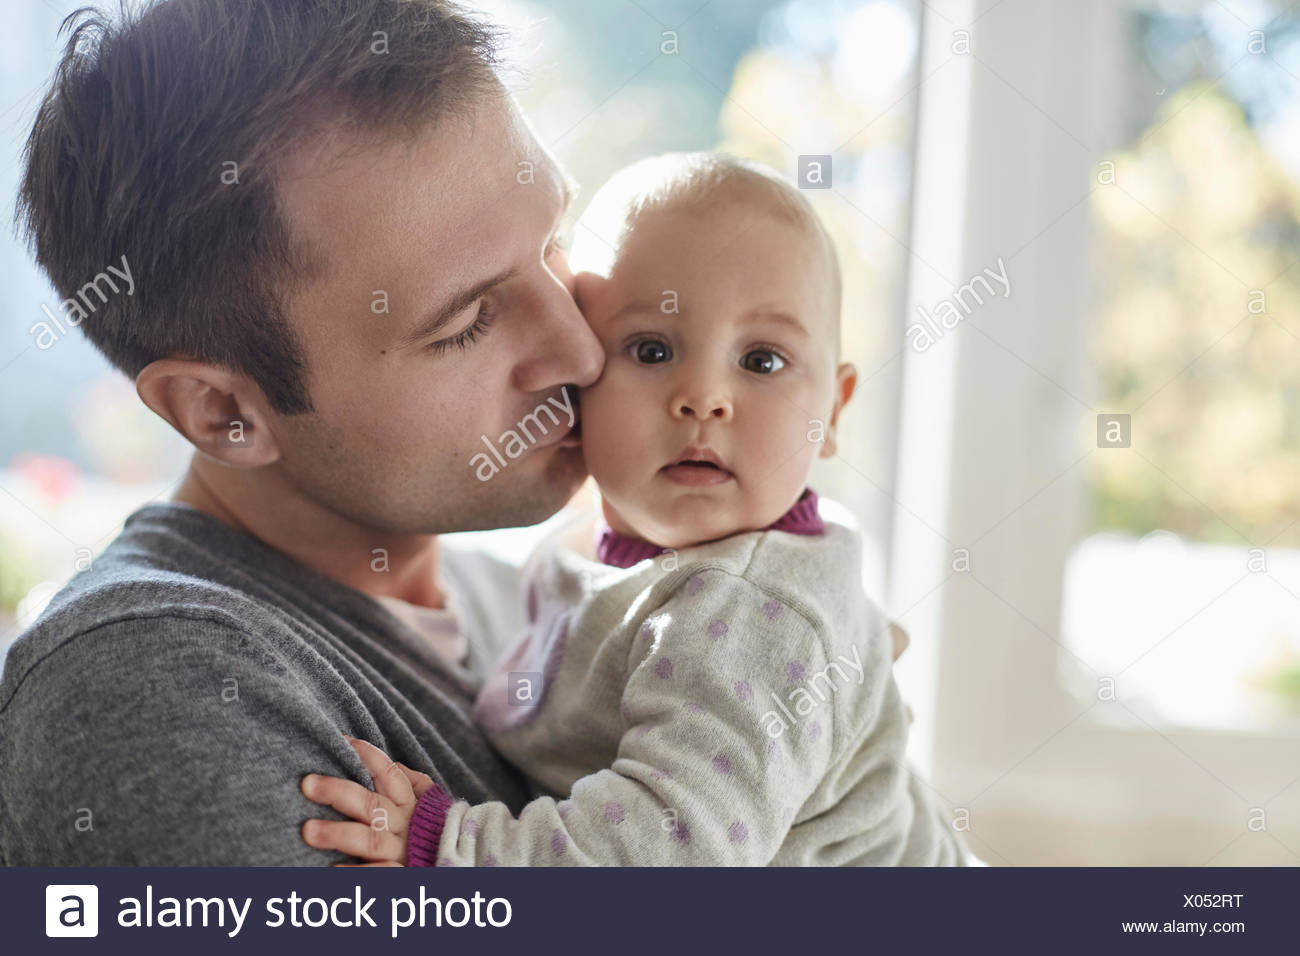 Portrait baby daughter being kisses on cheek by father - Stock Image